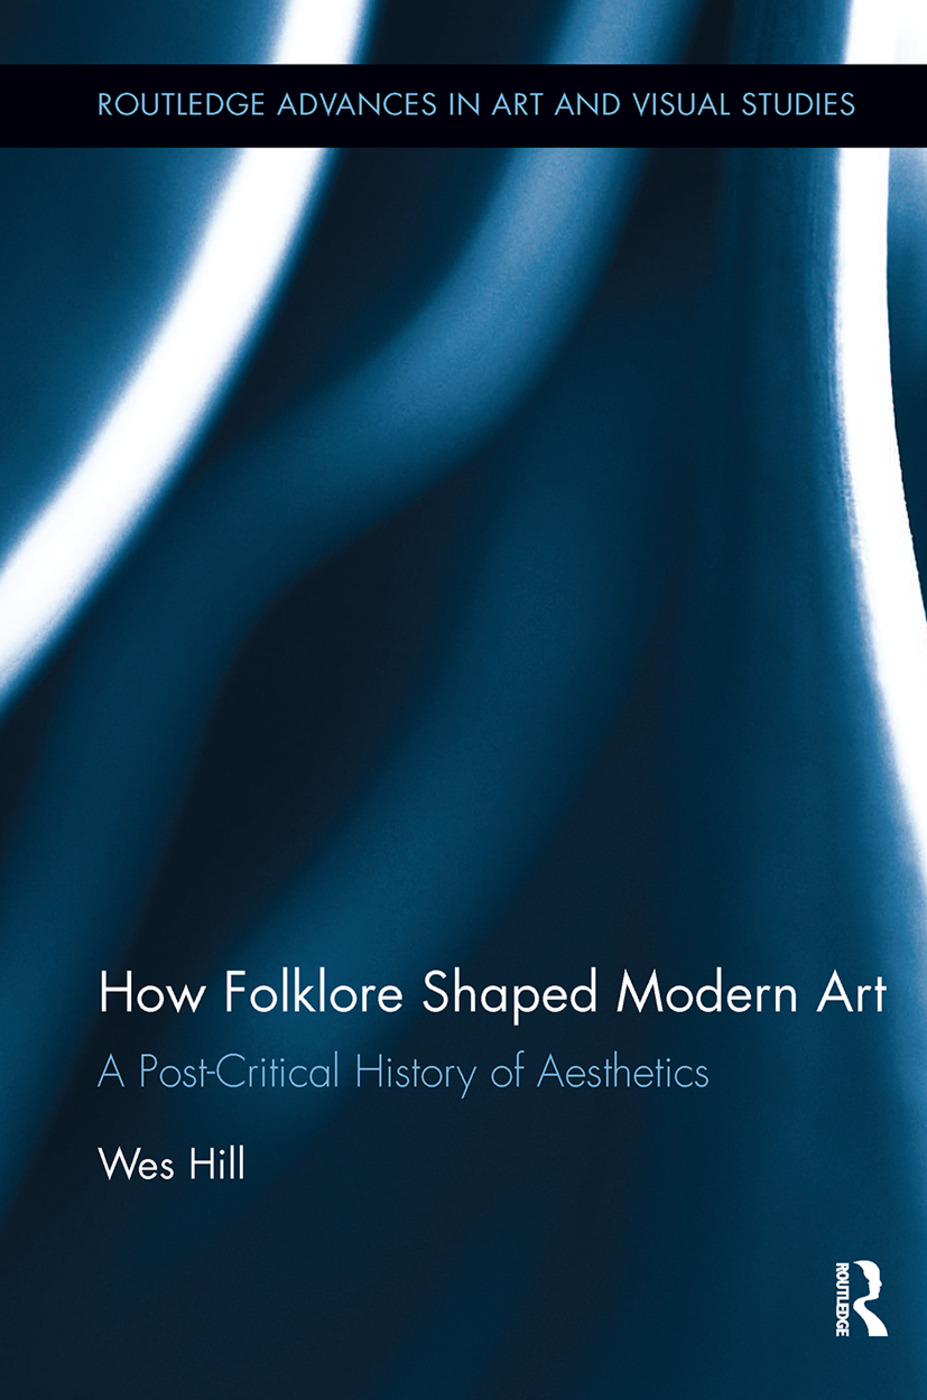 How Folklore Shaped Modern Art: A Post-Critical History of Aesthetics book cover